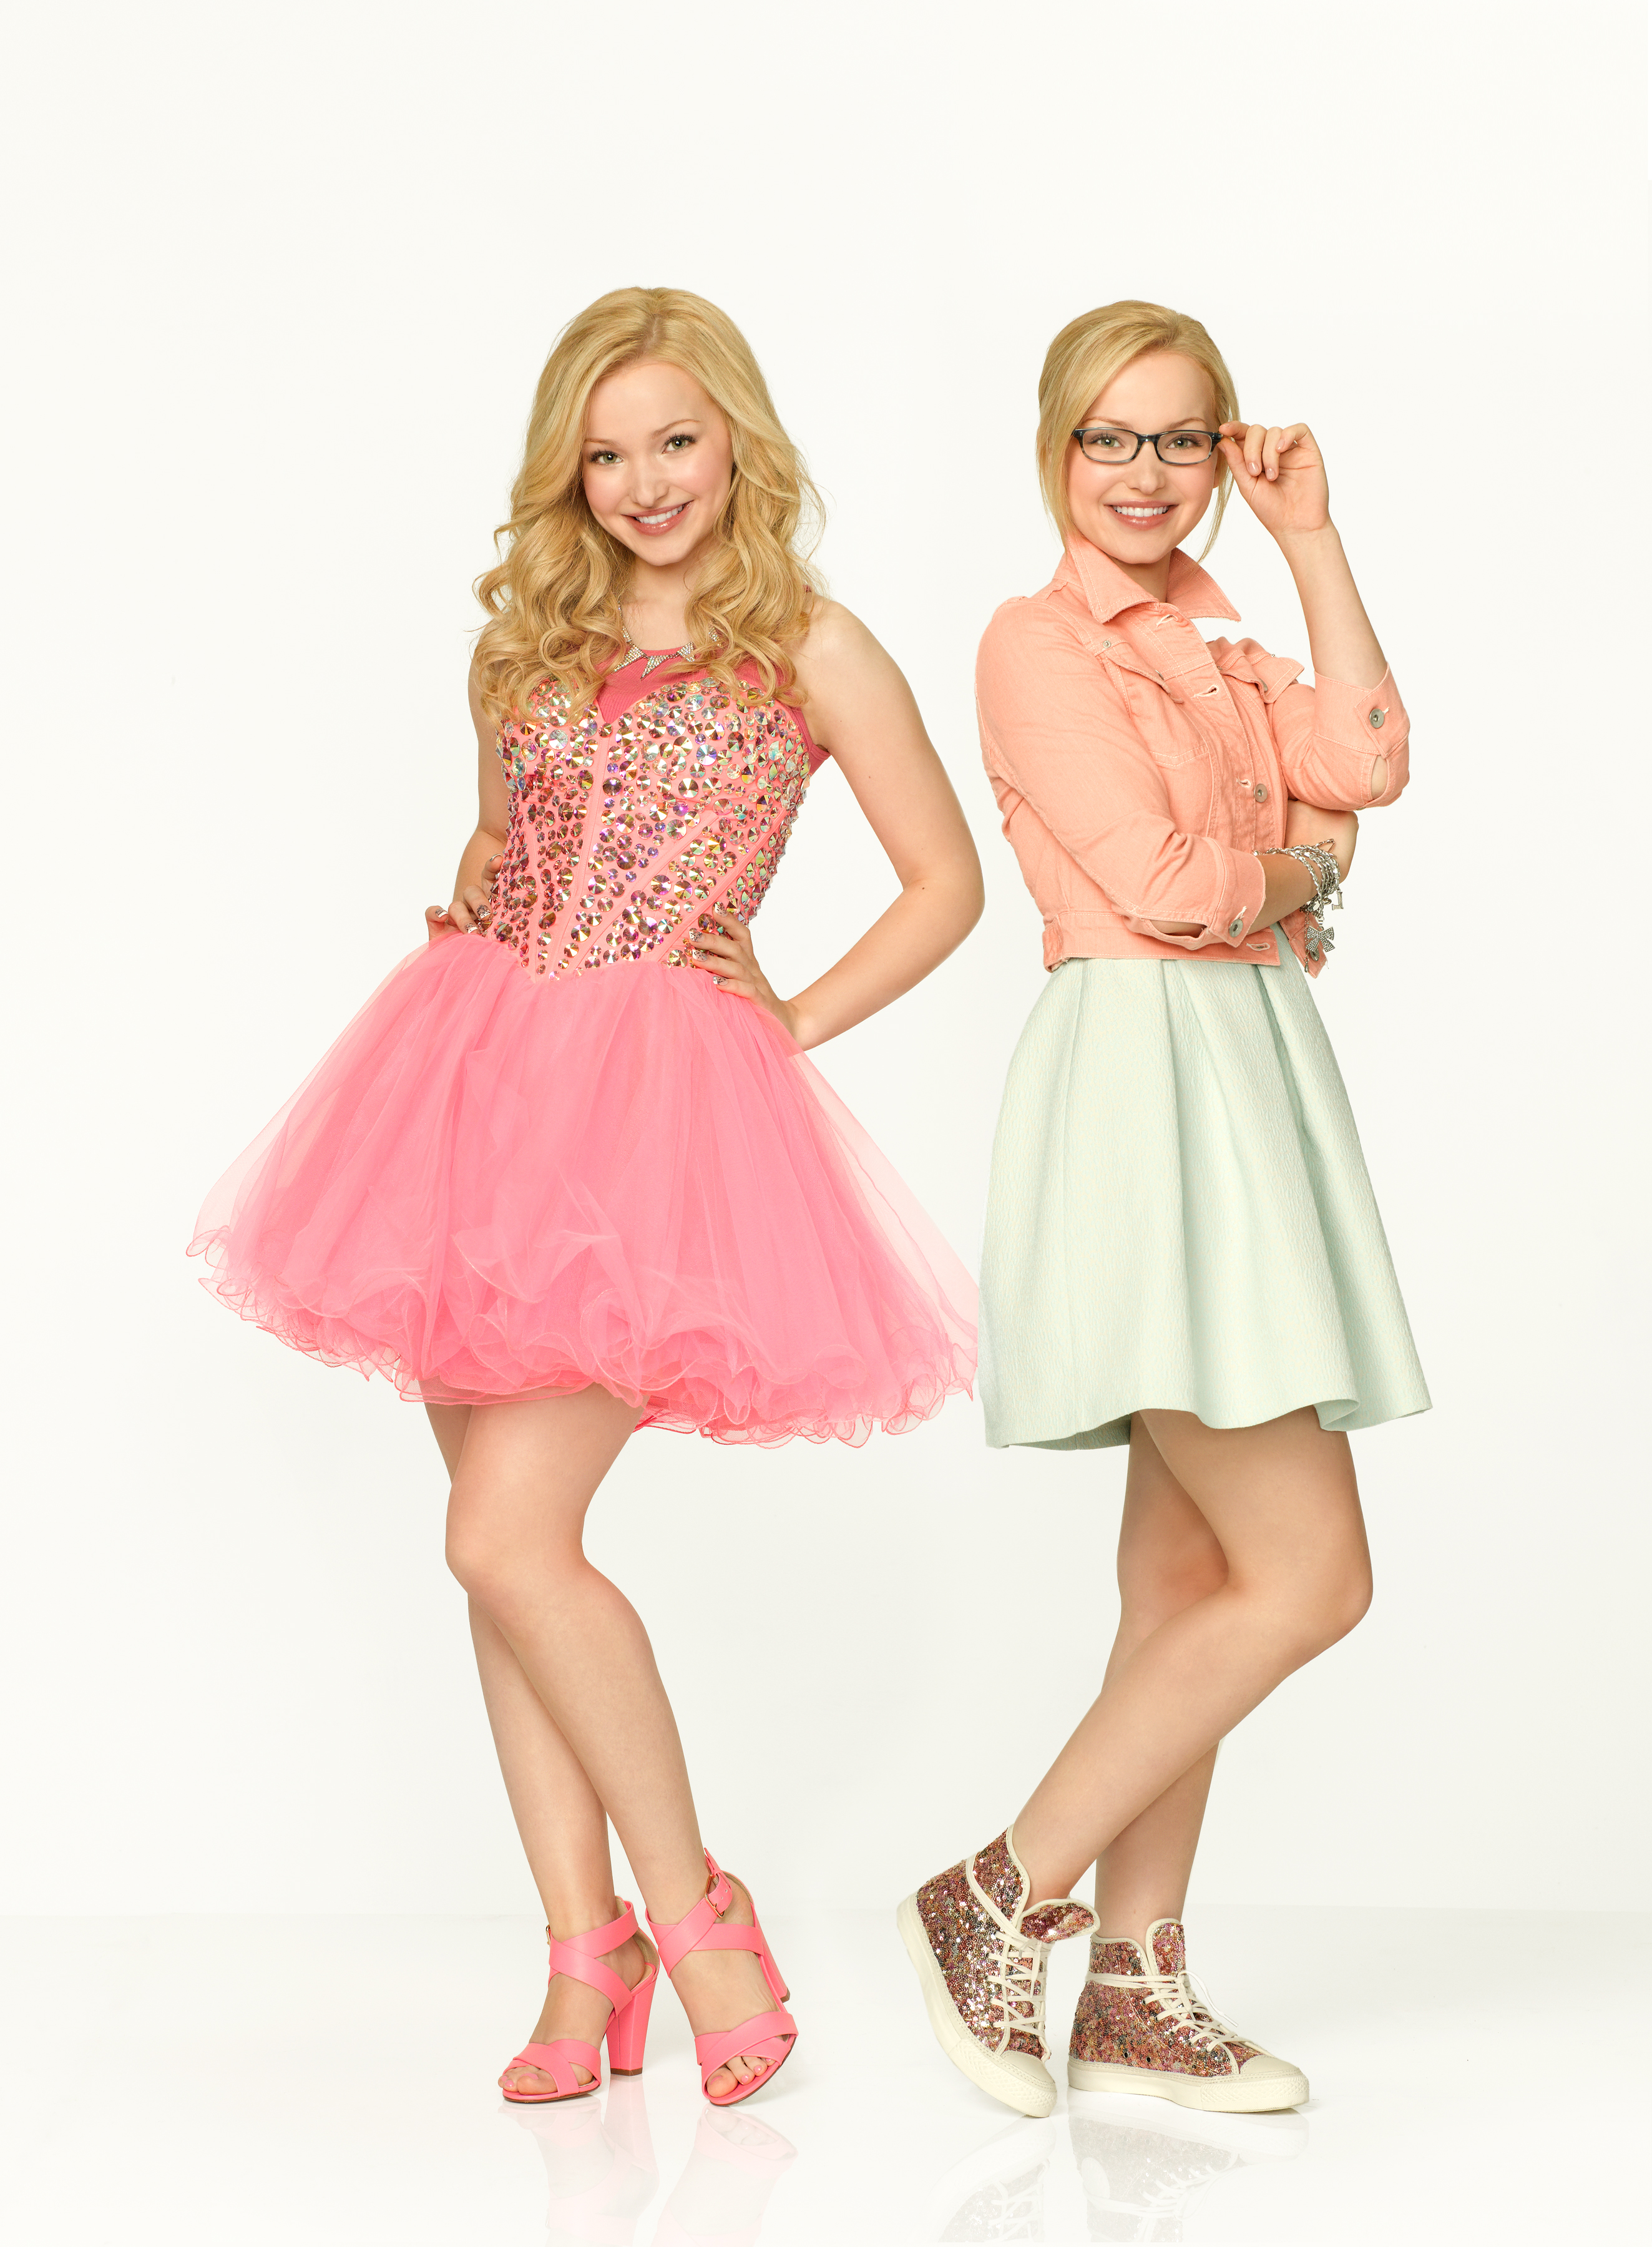 User blog:TinistaGabriela/Liv & Maddie Style - Liv and Maddie Wiki